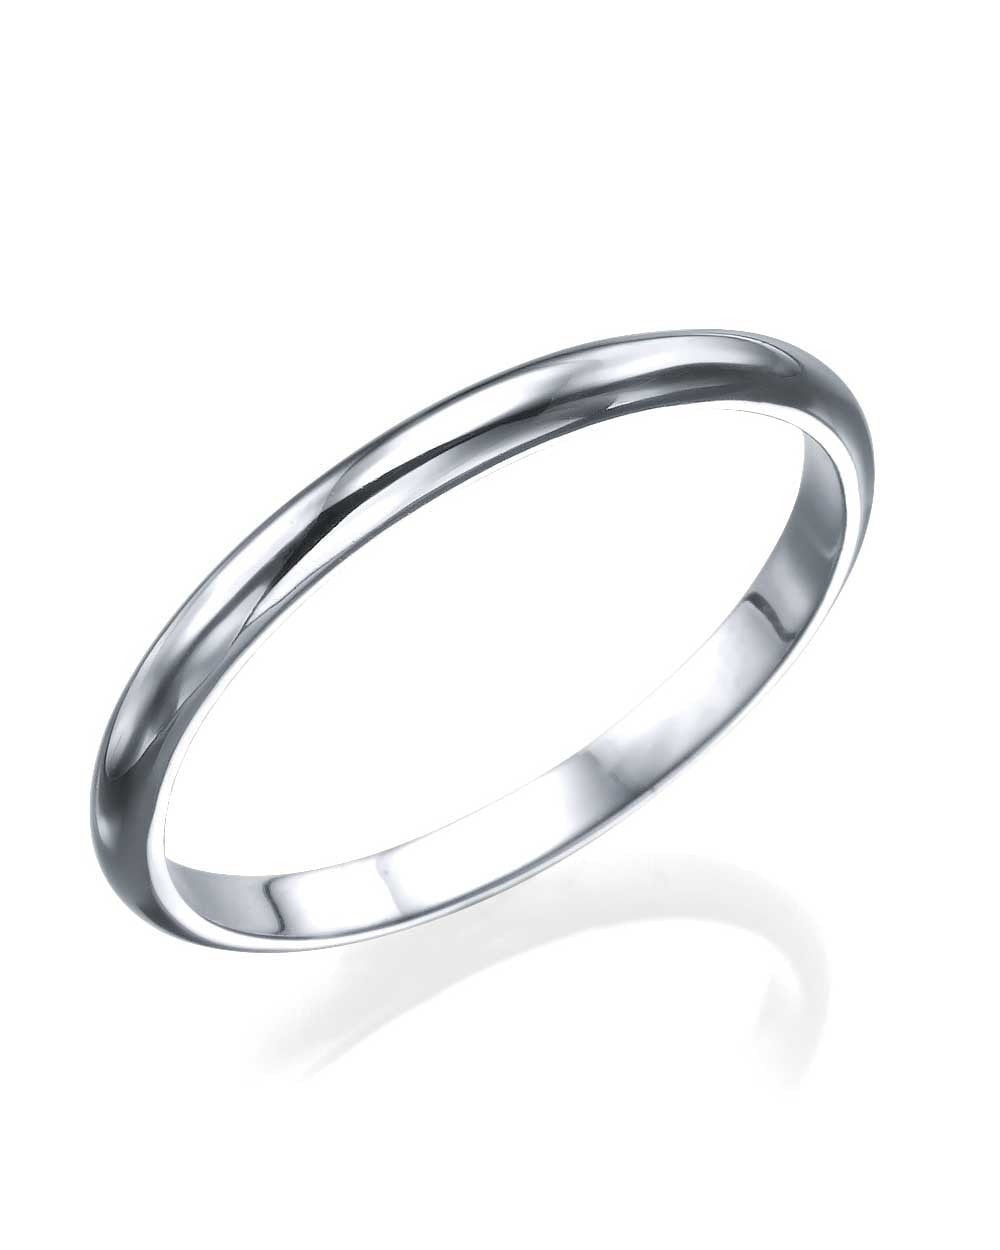 wedding rings white gold womens wedding ring 2mm rounded plain wedding band